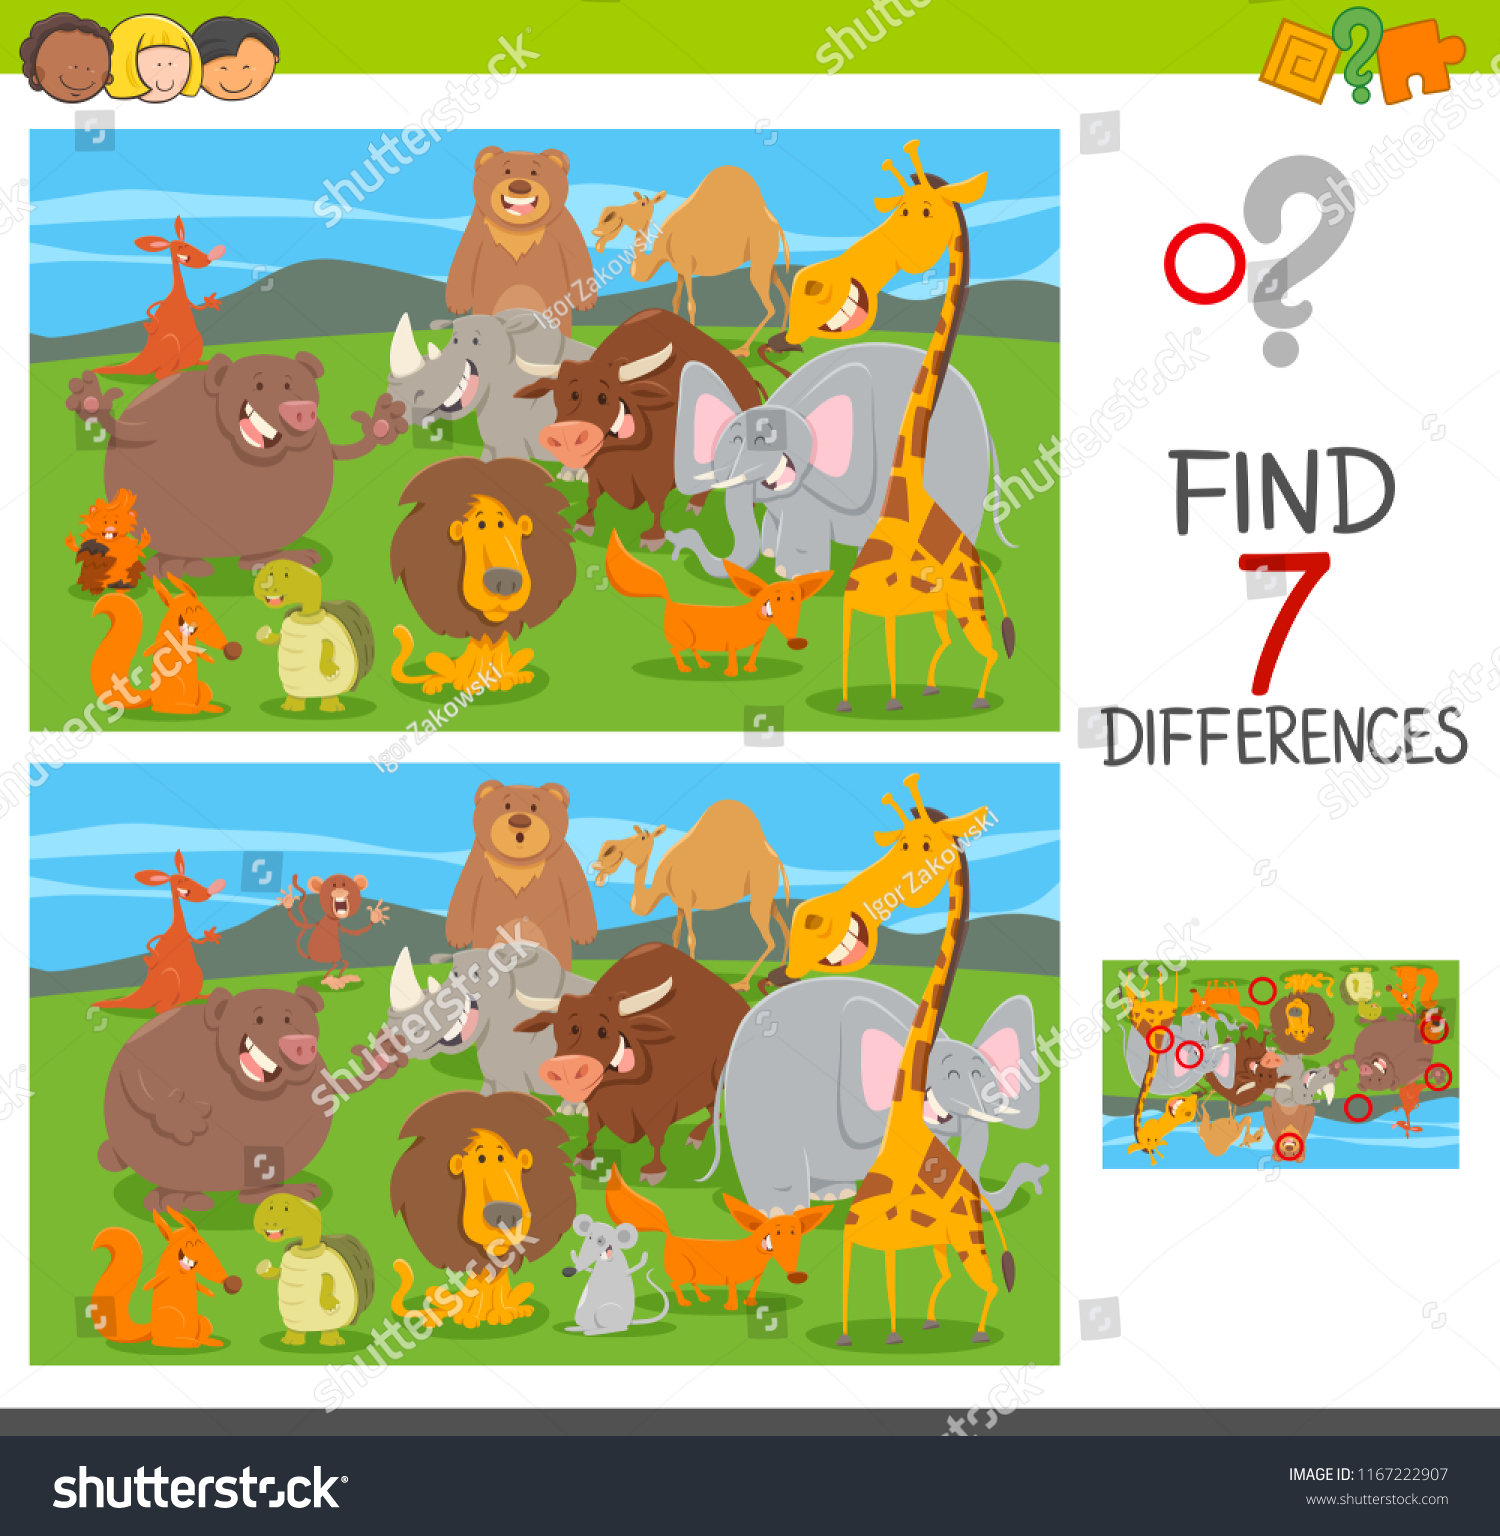 Cartoon illustration of finding seven differences between pictures educational puzzle game for children with animal characters